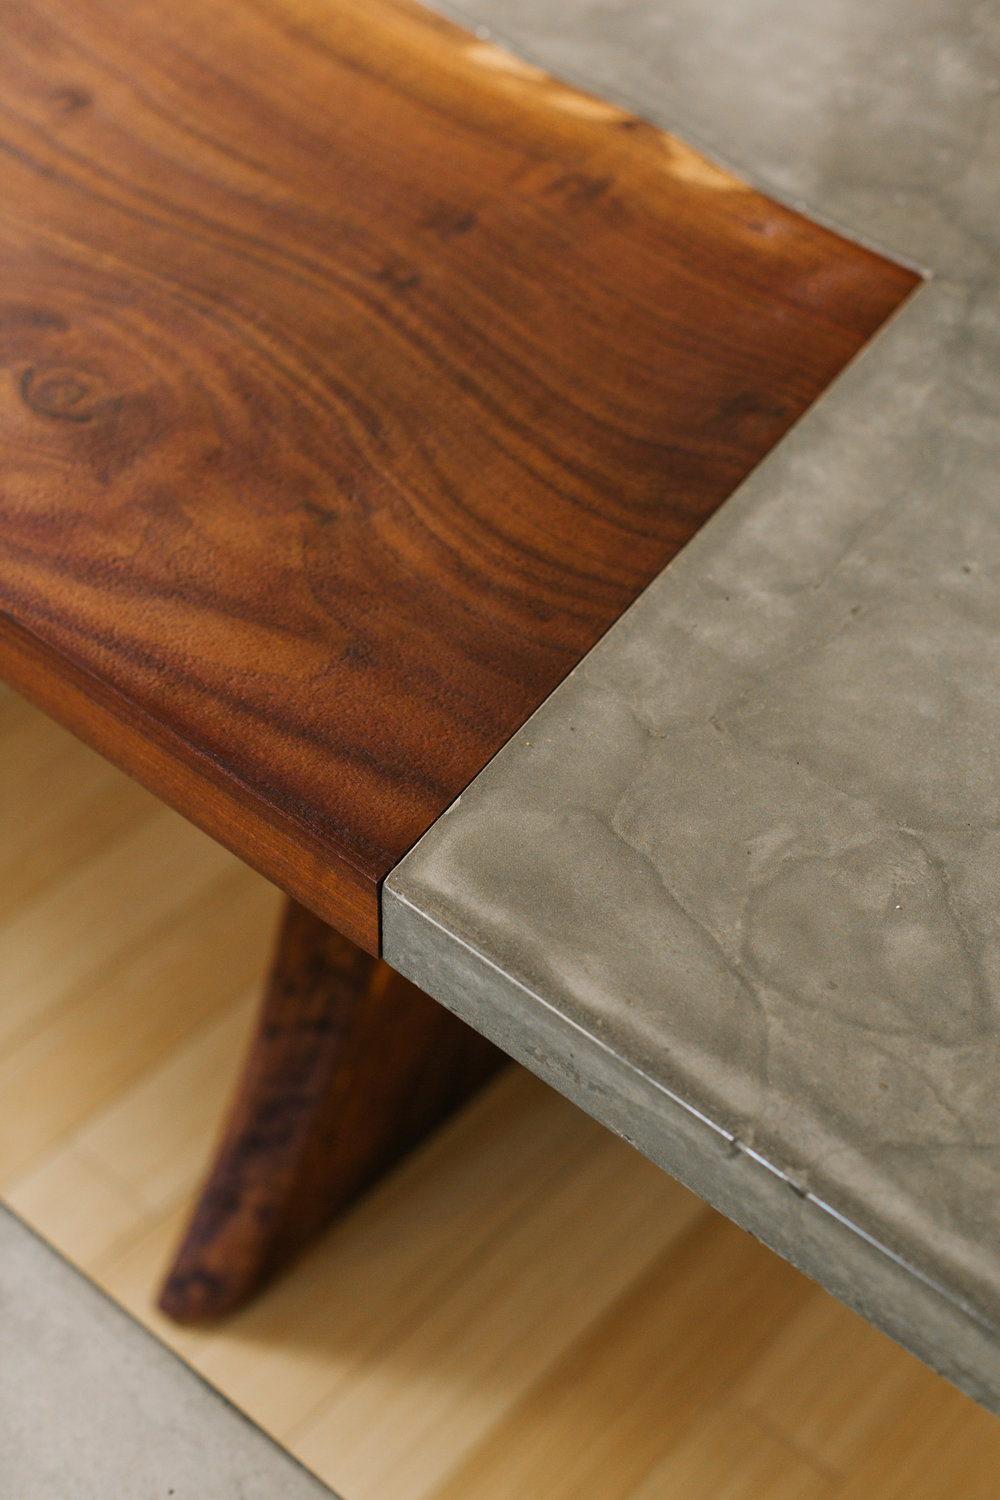 Airehart Inc-Airehart Construction-Custom Wood and Concrete Table-Chico Building Contractor-Chico Construction Company-10.jpg